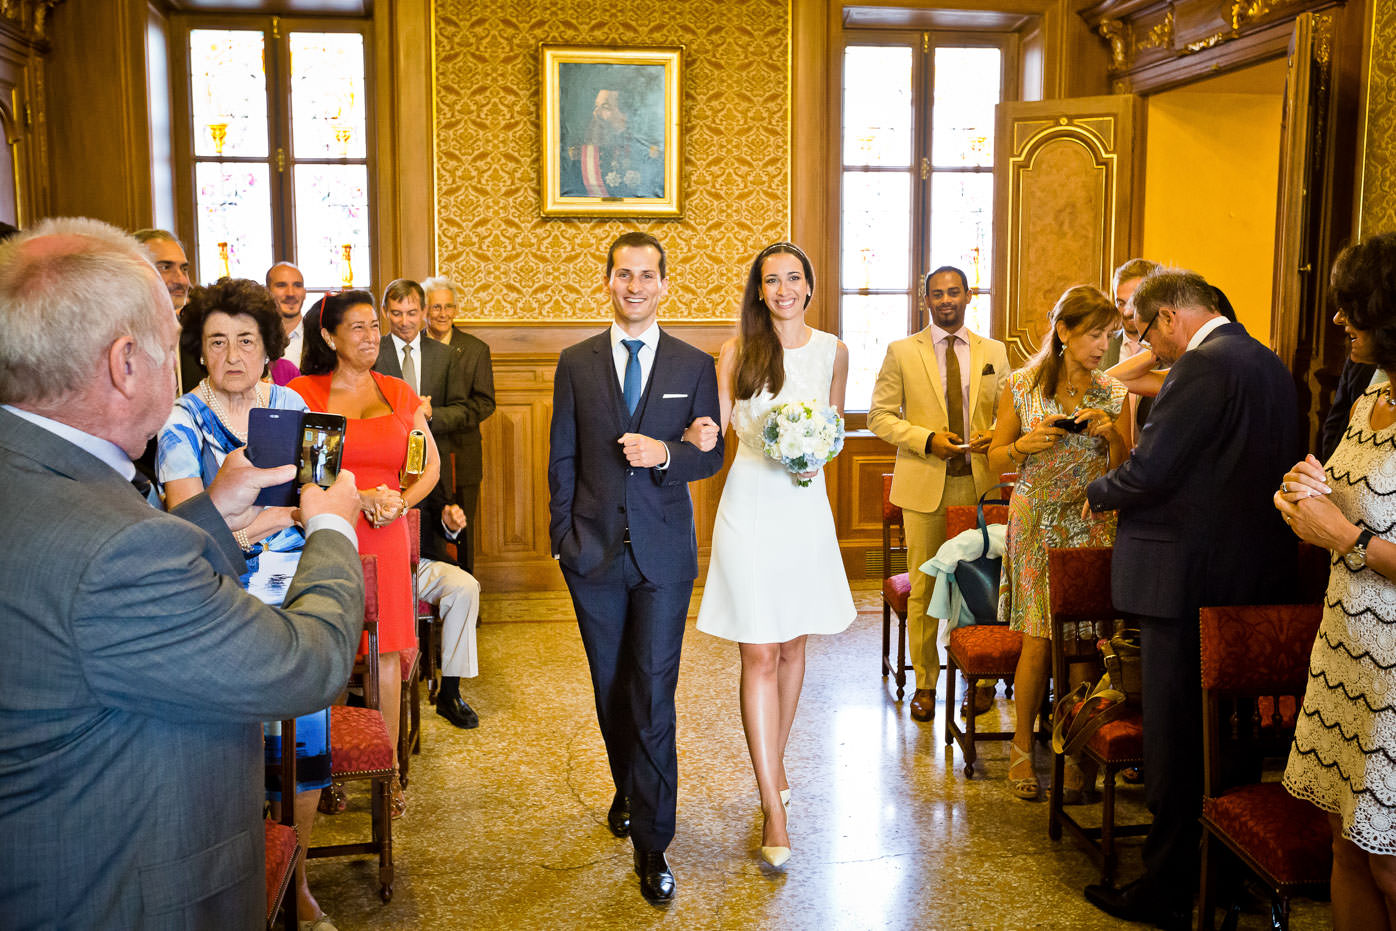 Photographe_Monaco_Monte_Carlo_Mariage_Wedding_05